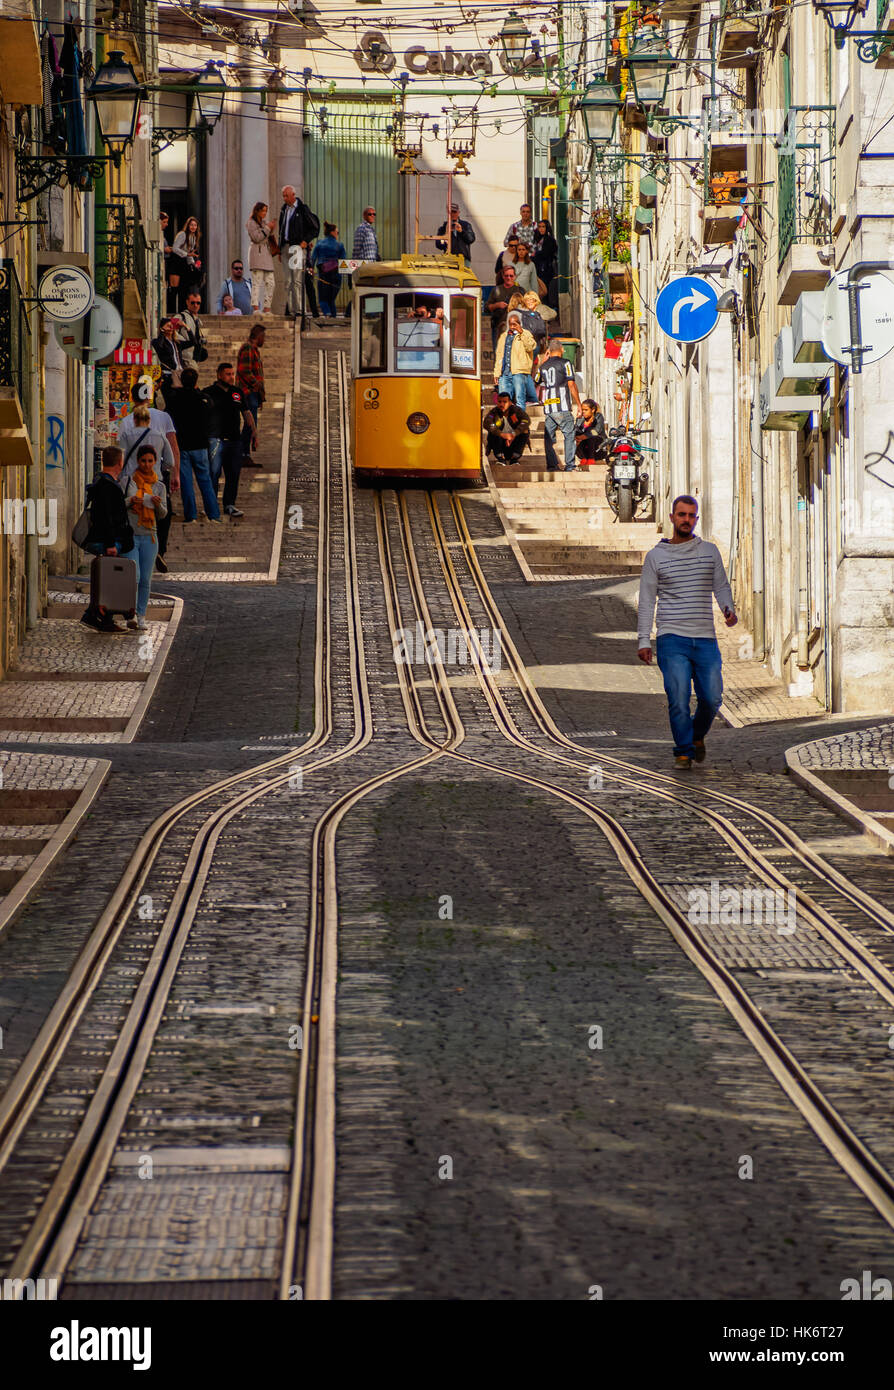 Busy street with yellow funicular railway in city centre, Bica Funicular, Elevador da Bica, Lisbon, Portugal - Stock Image